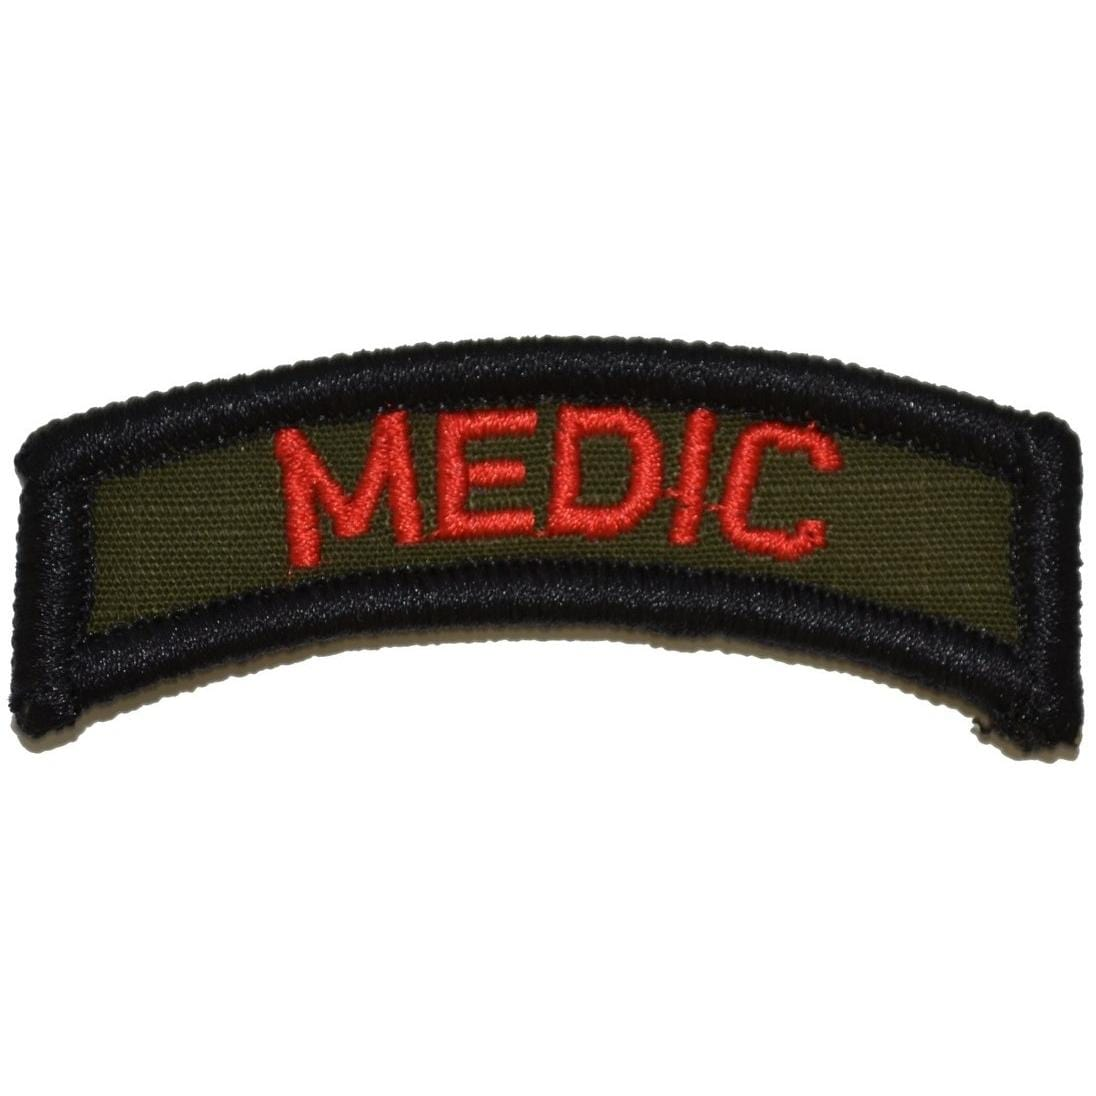 Tactical Gear Junkie Patches Olive Drab Medic Tab Patch